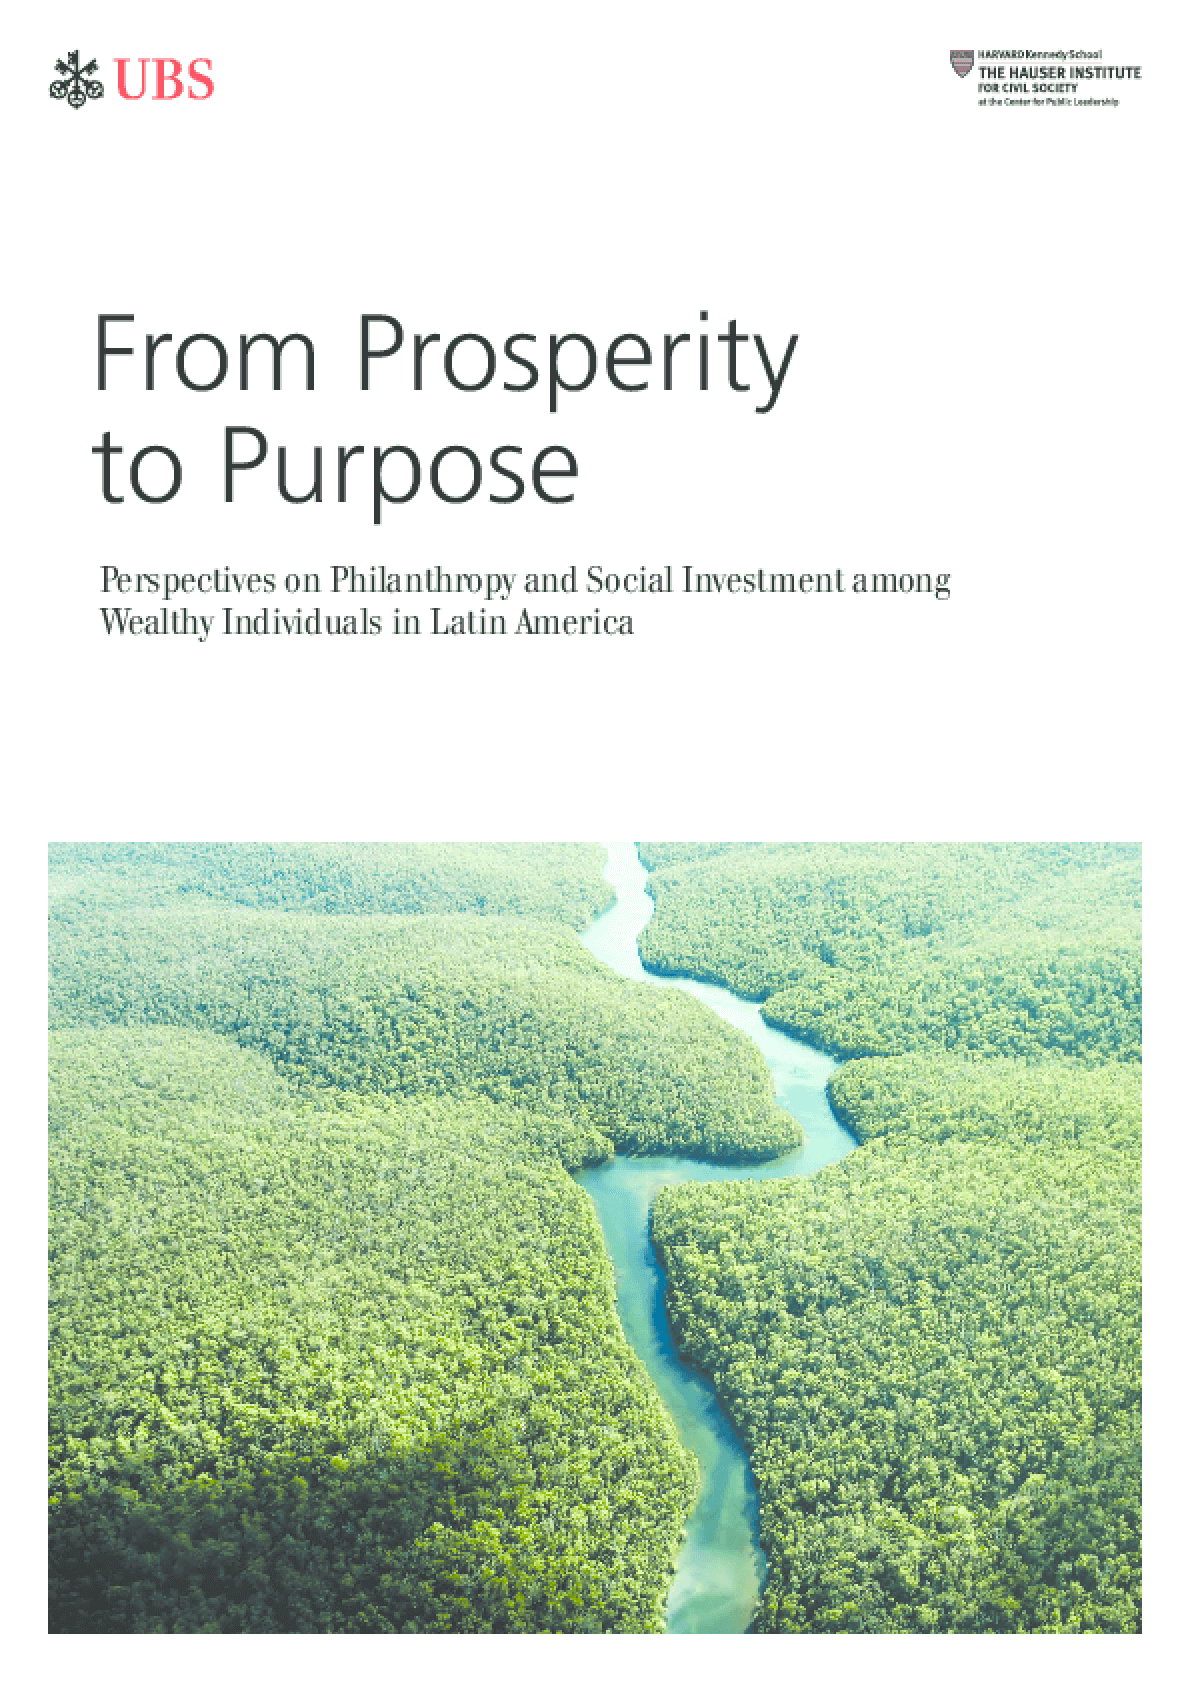 From Prosperity to Purpose: Perspectives on Philanthropy and Social Investment among Wealthy Individuals in Latin America